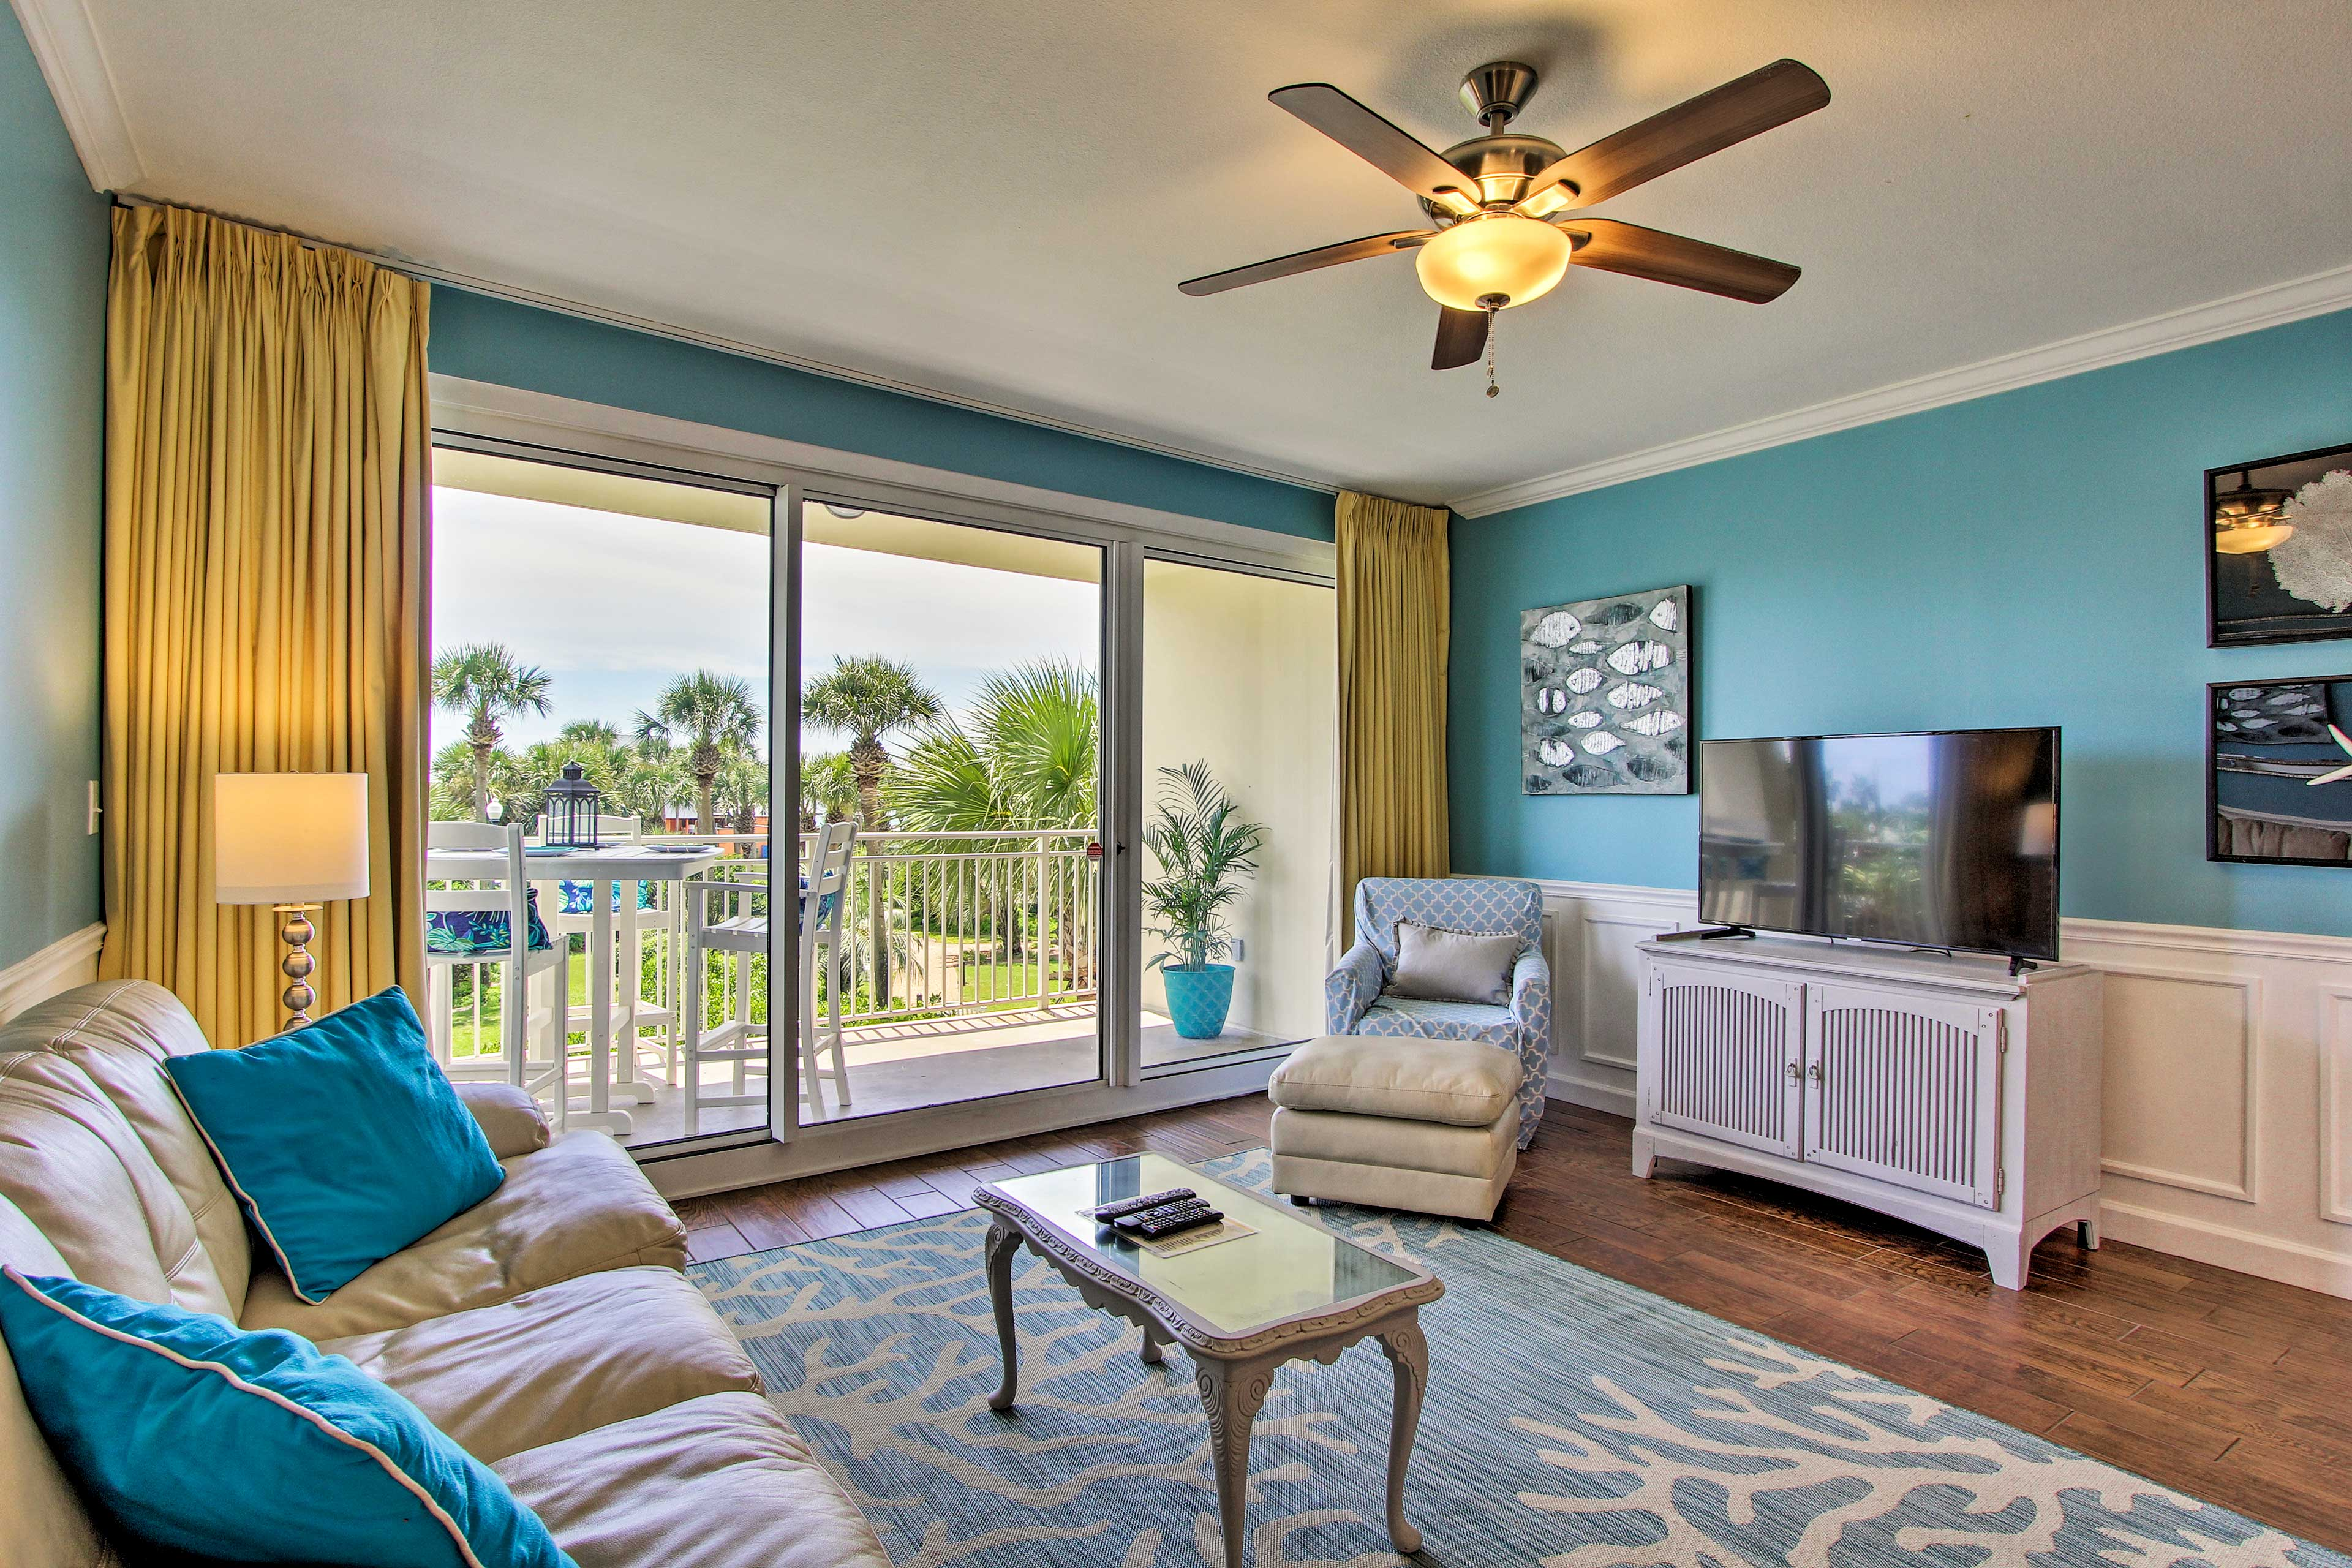 Map out your Destin getaway to this vibrant beach-themed resort condo!